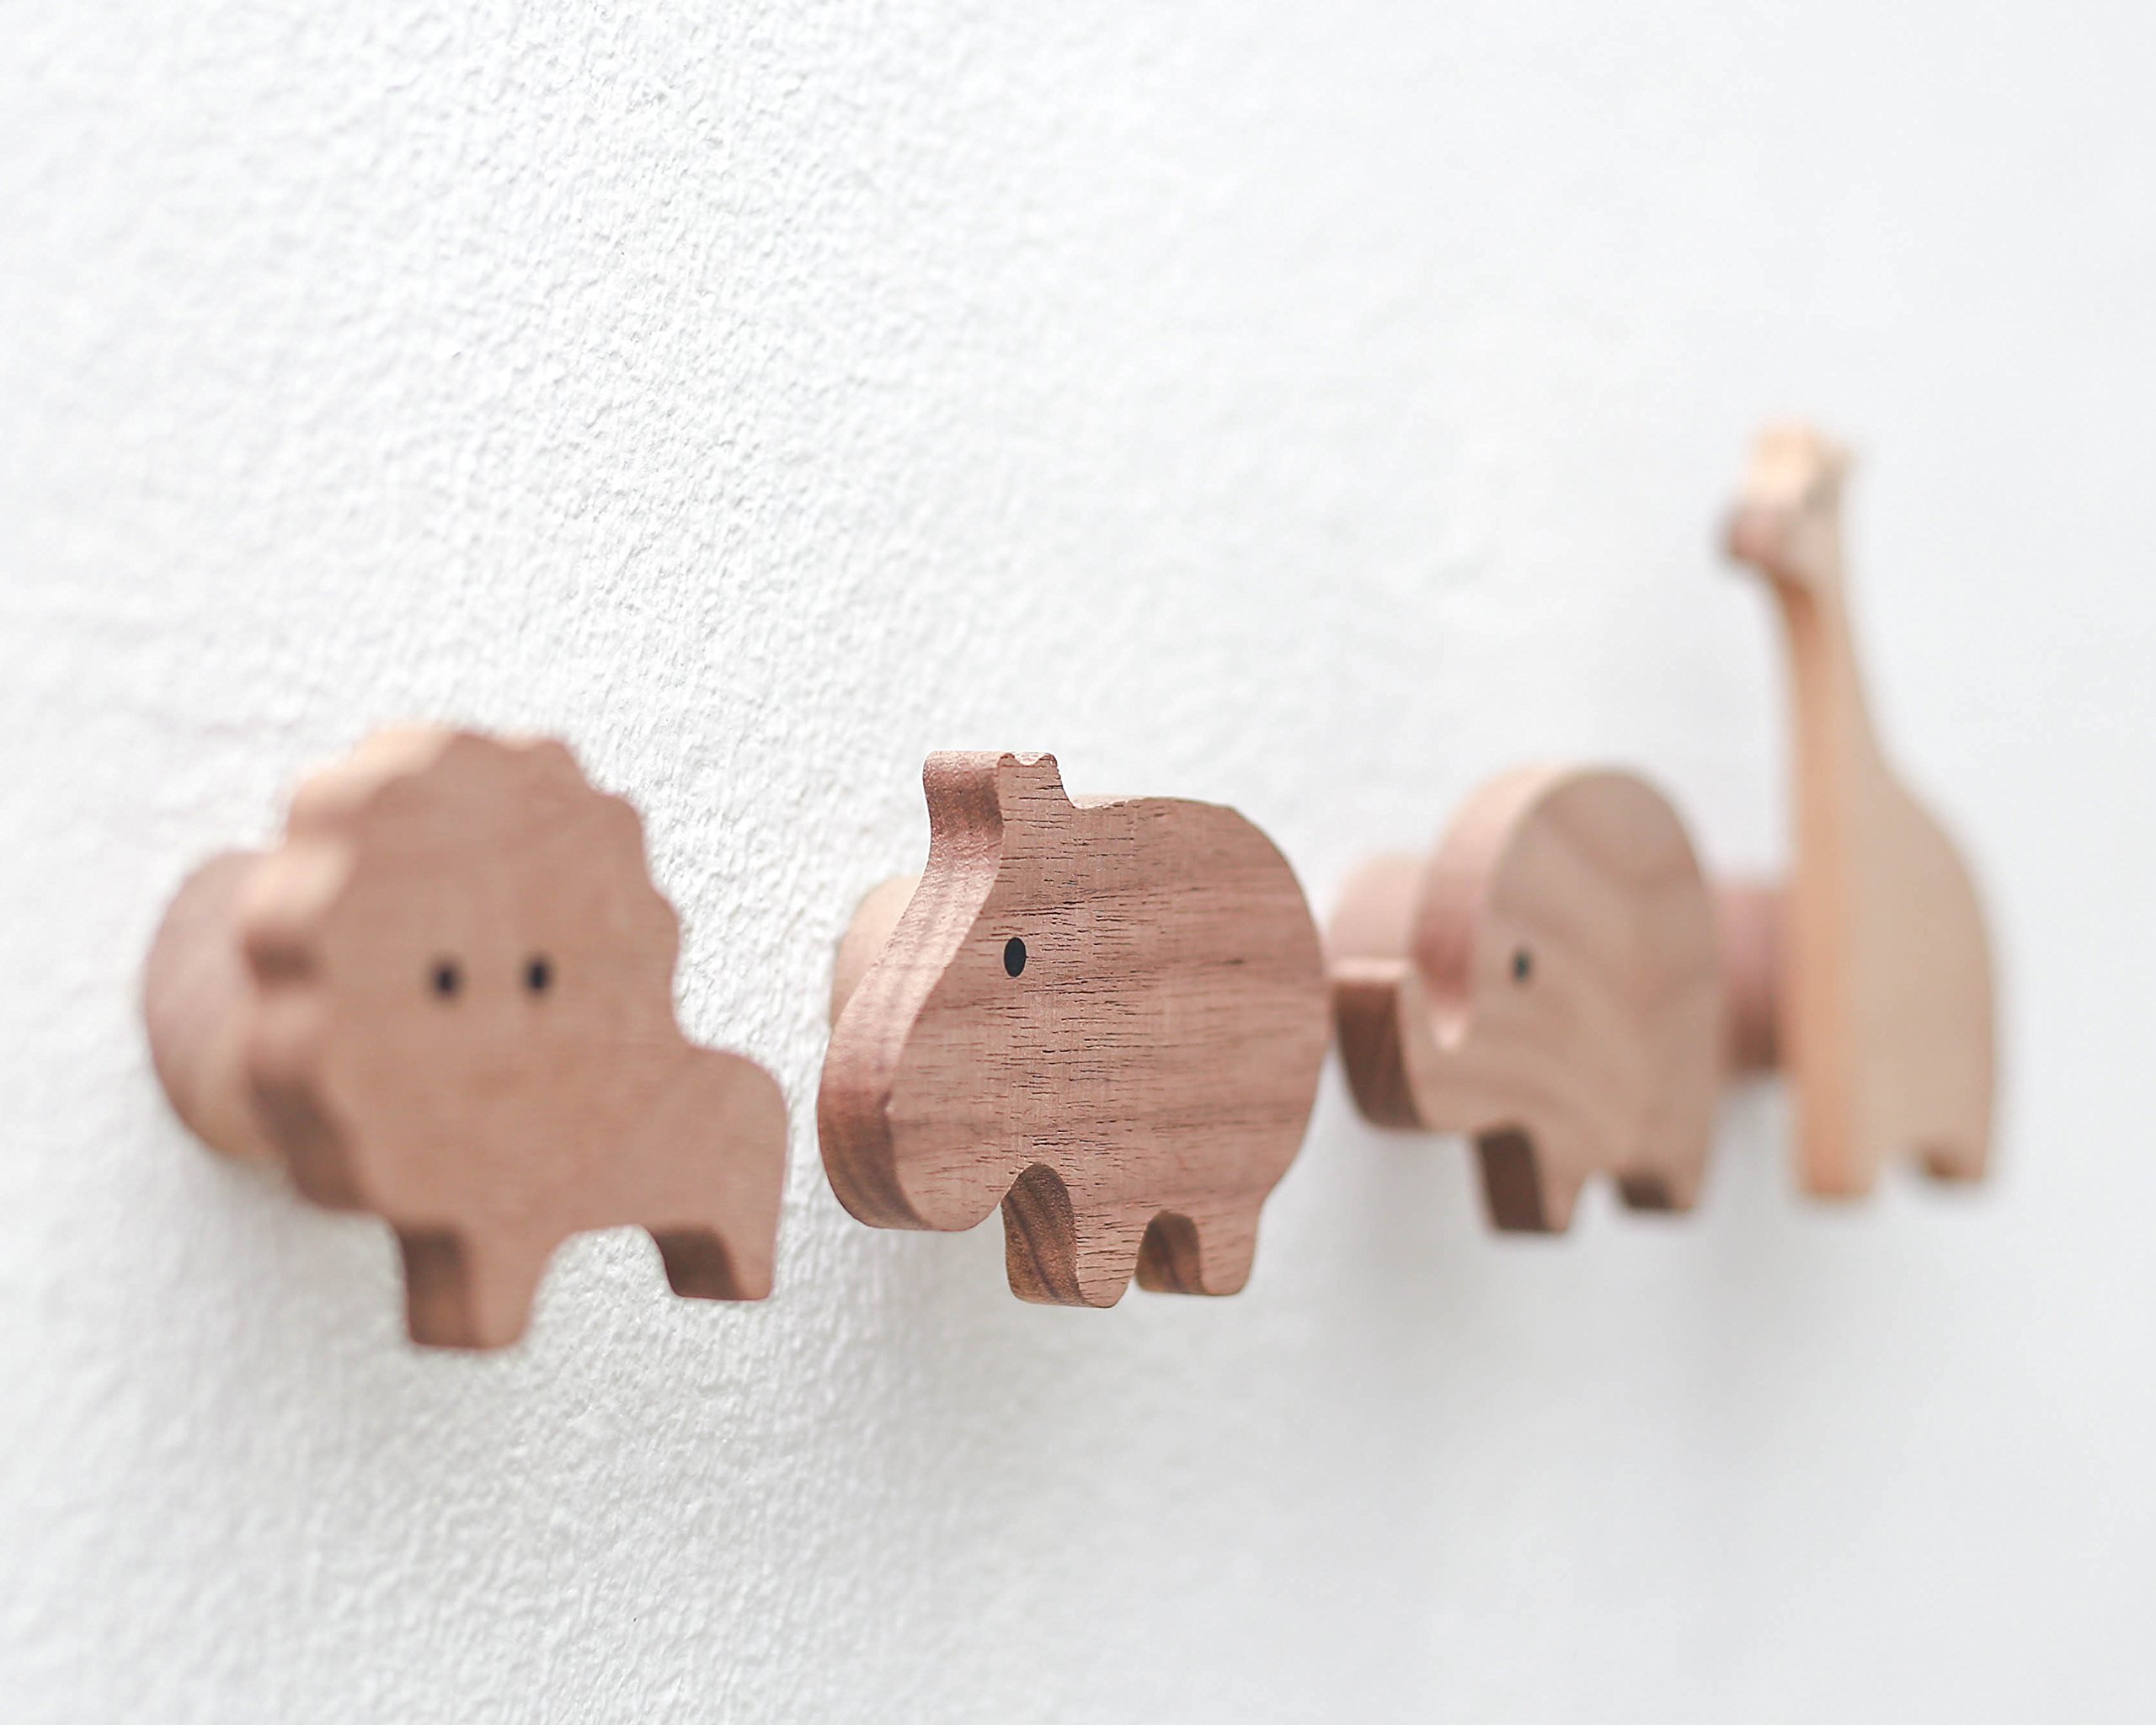 Natural Wooden Wall Hooks for Kids - 100% Solid Walnut Wood, Handmade Animal Clothes Hanger Wall Mounted Hook Organizer - Child Room Decorative Design - Pack of 4